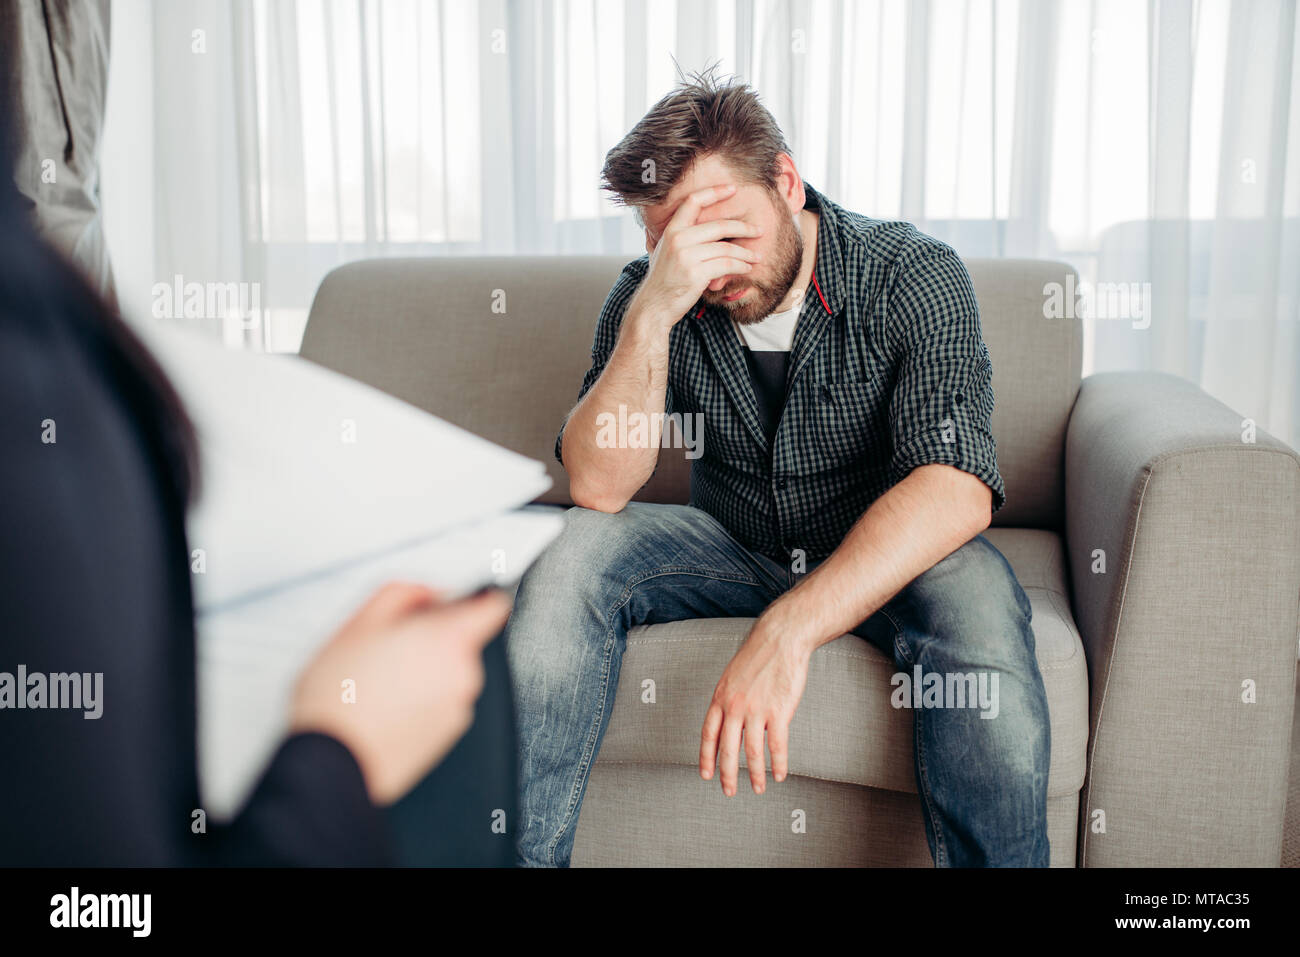 Stressed male patient at psychologist, professional psychology support. Female doctor writes notes in notepad, man sitting on sofa Stock Photo